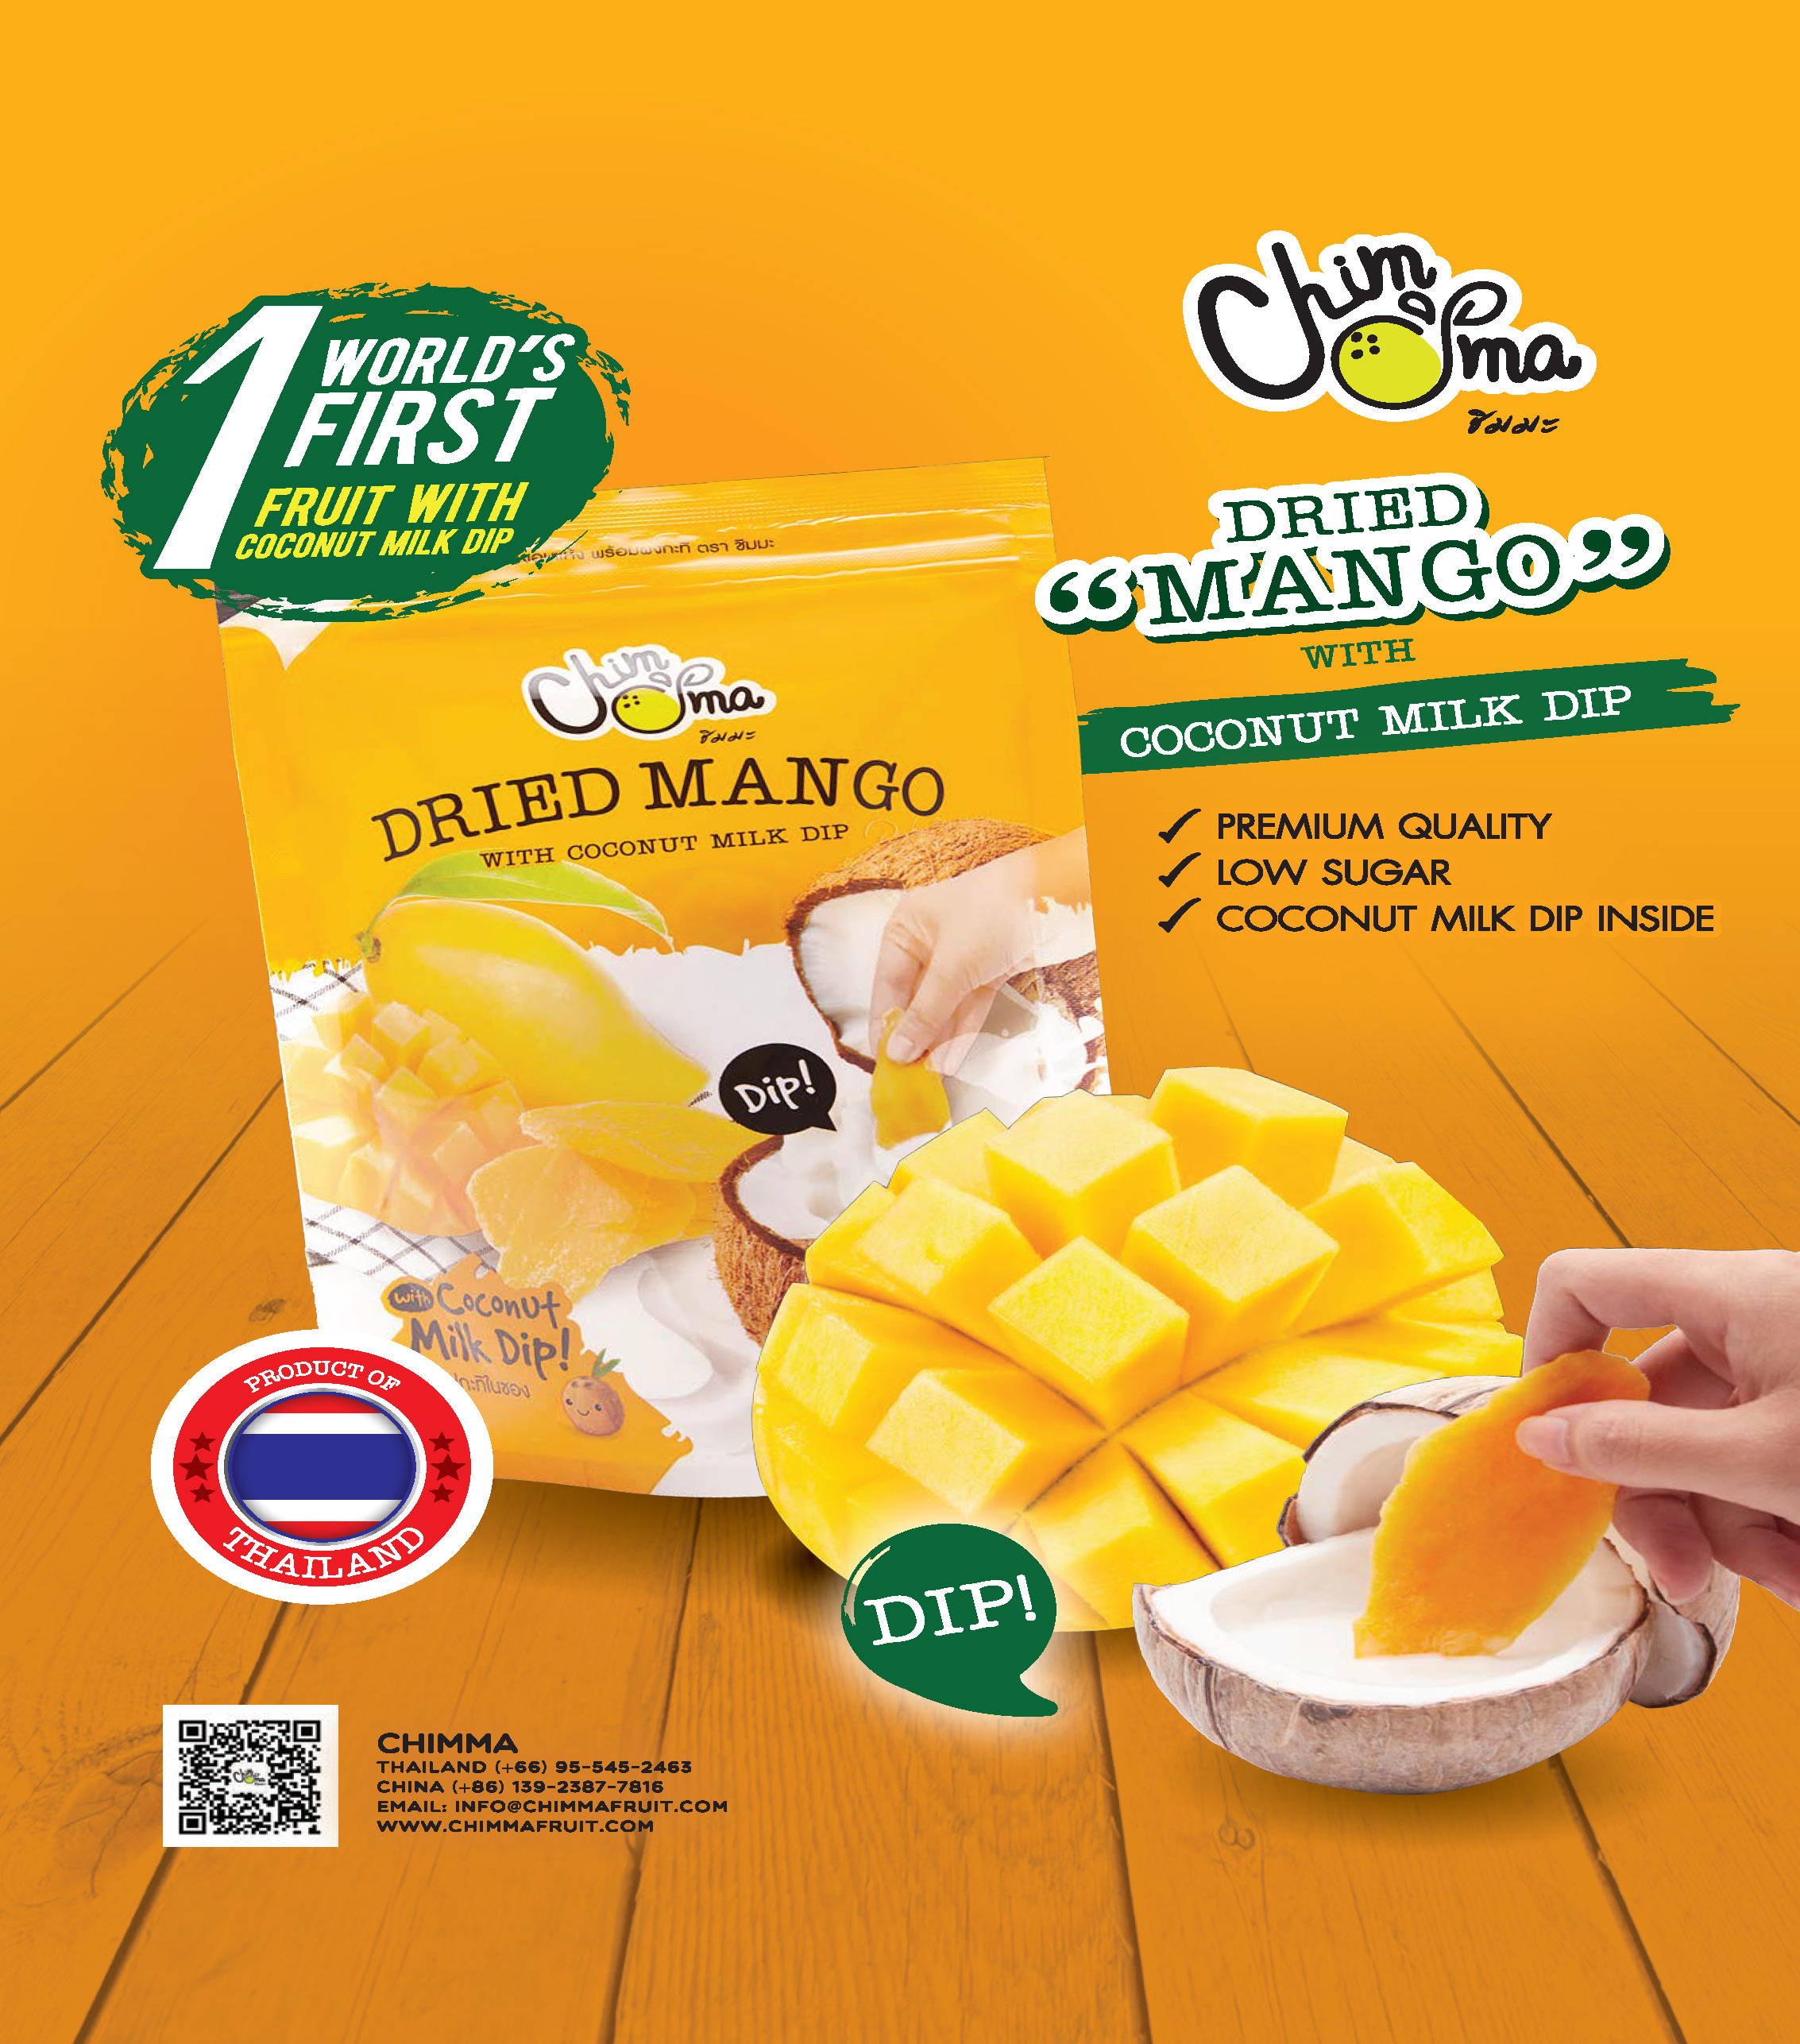 Dried Mango with Coconut Milk DIp